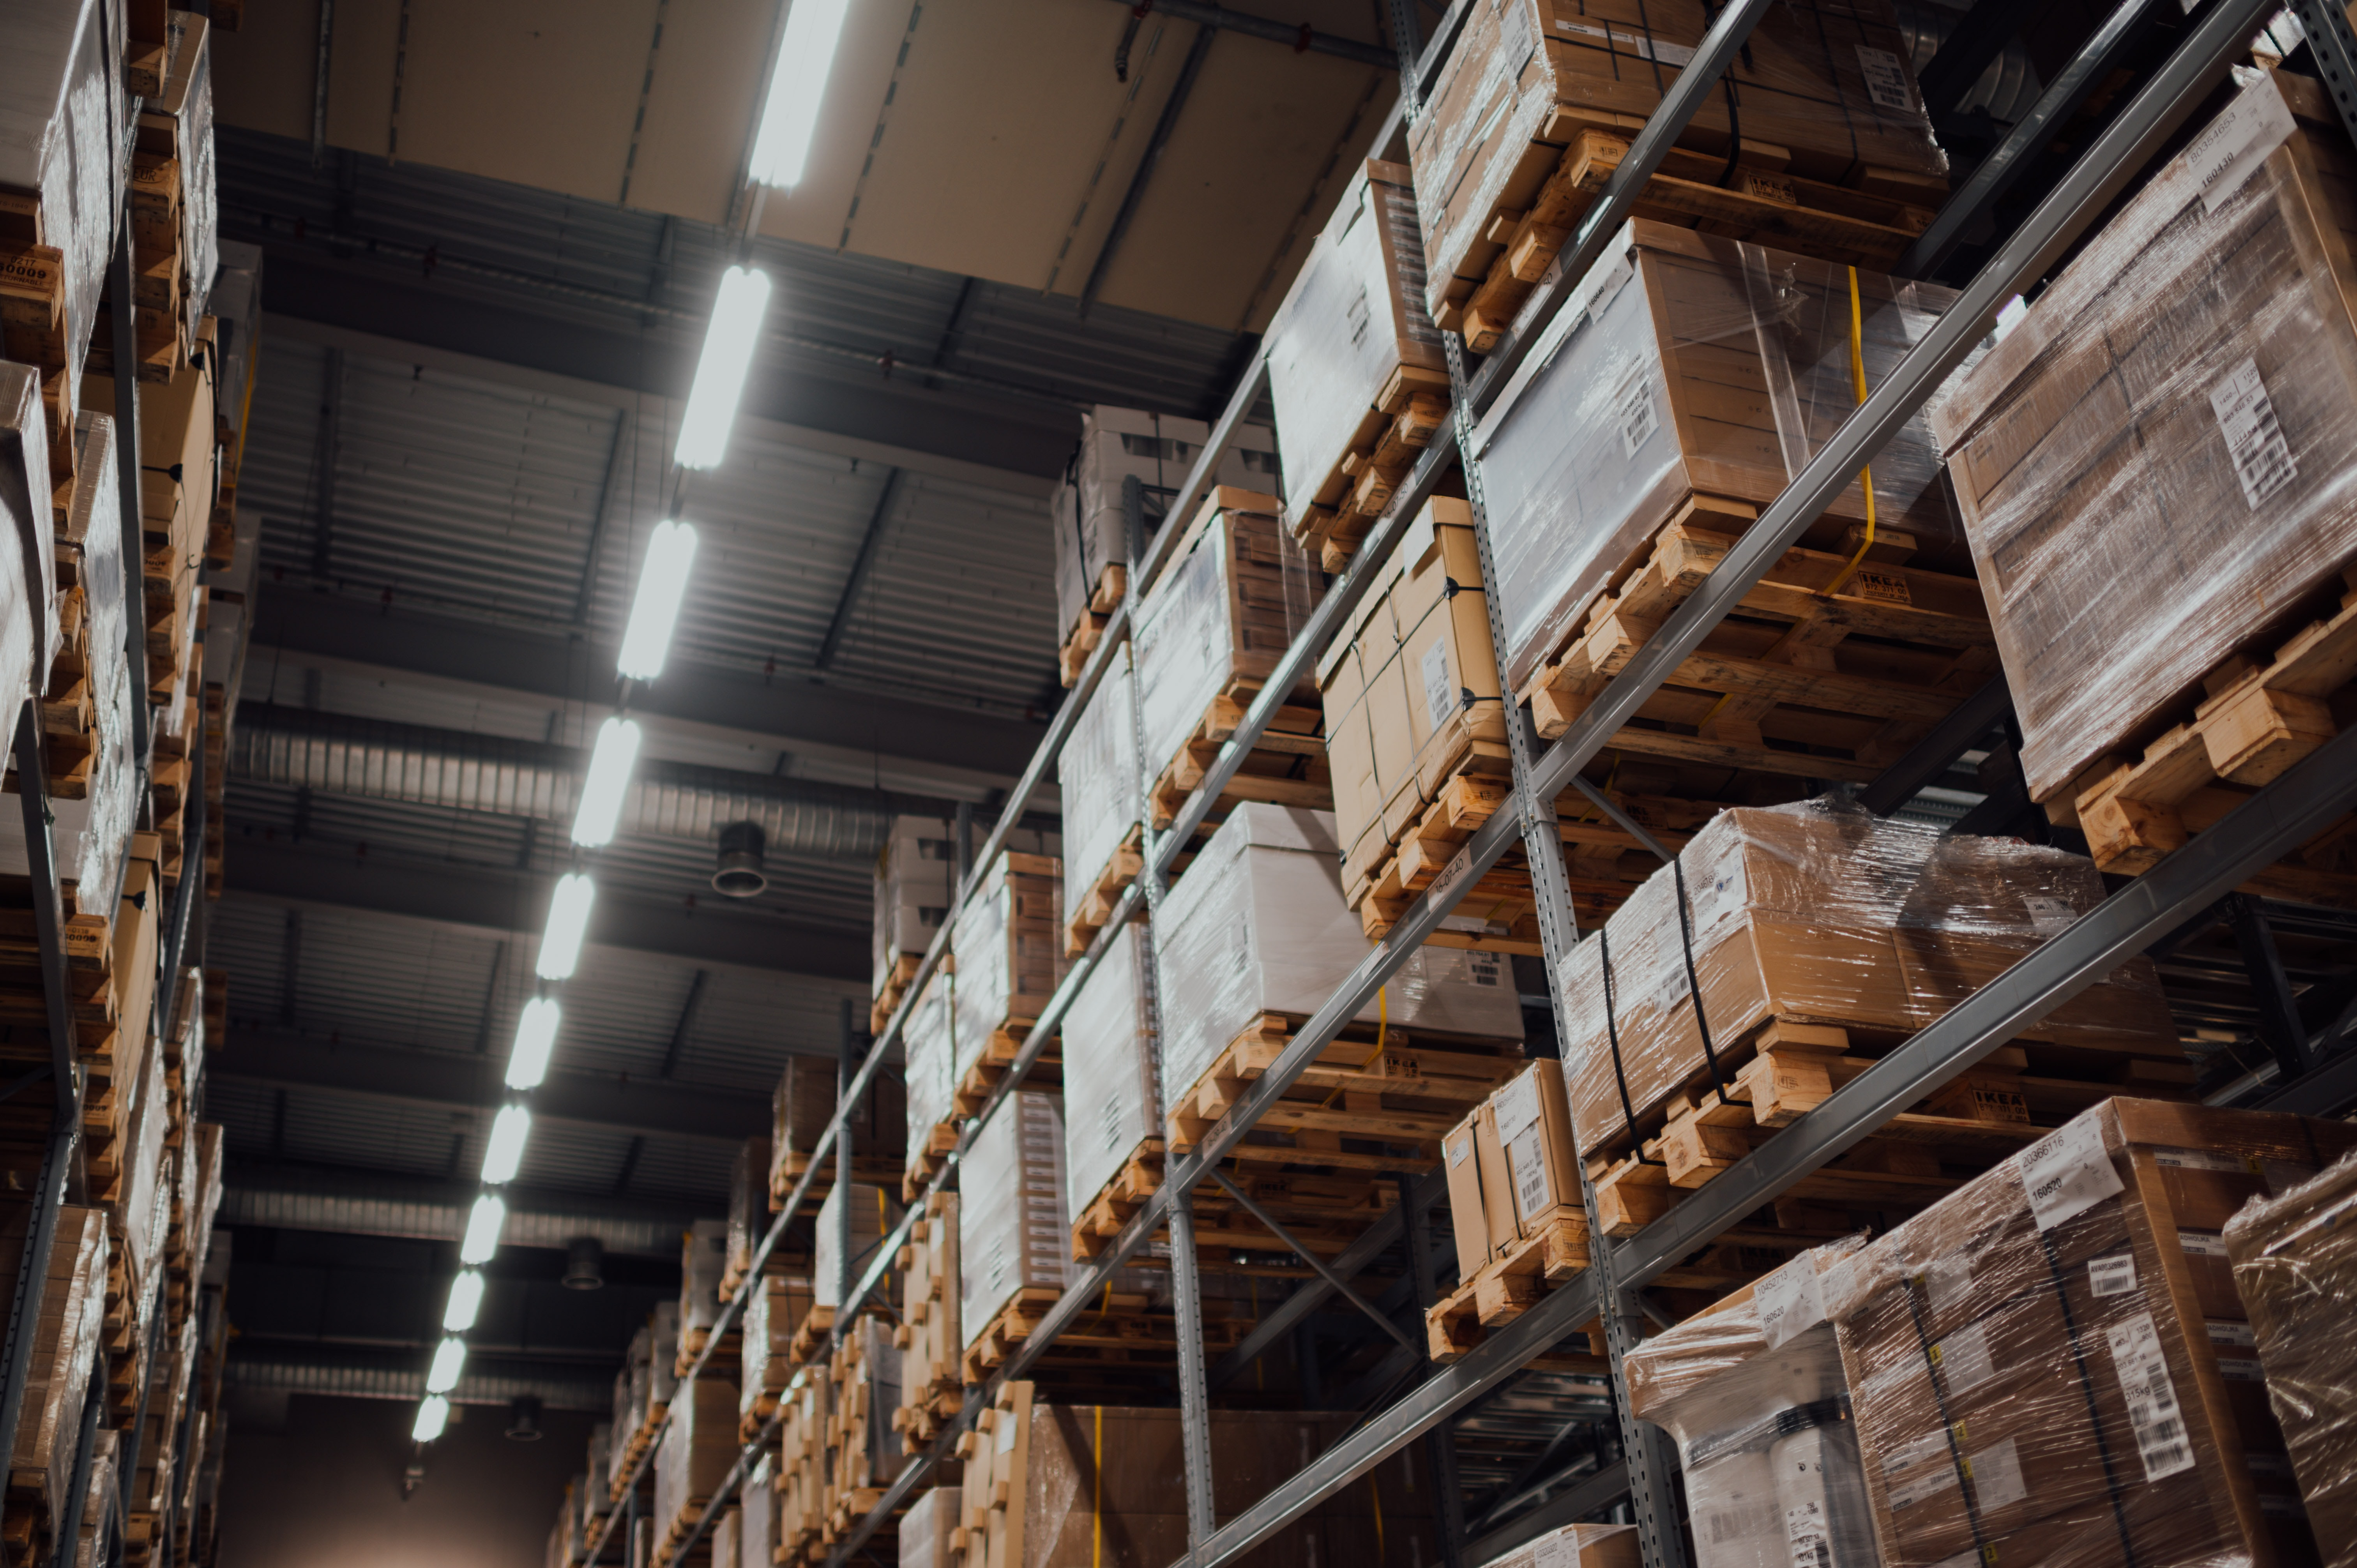 warehouse shelves stacked with pallets of supplies